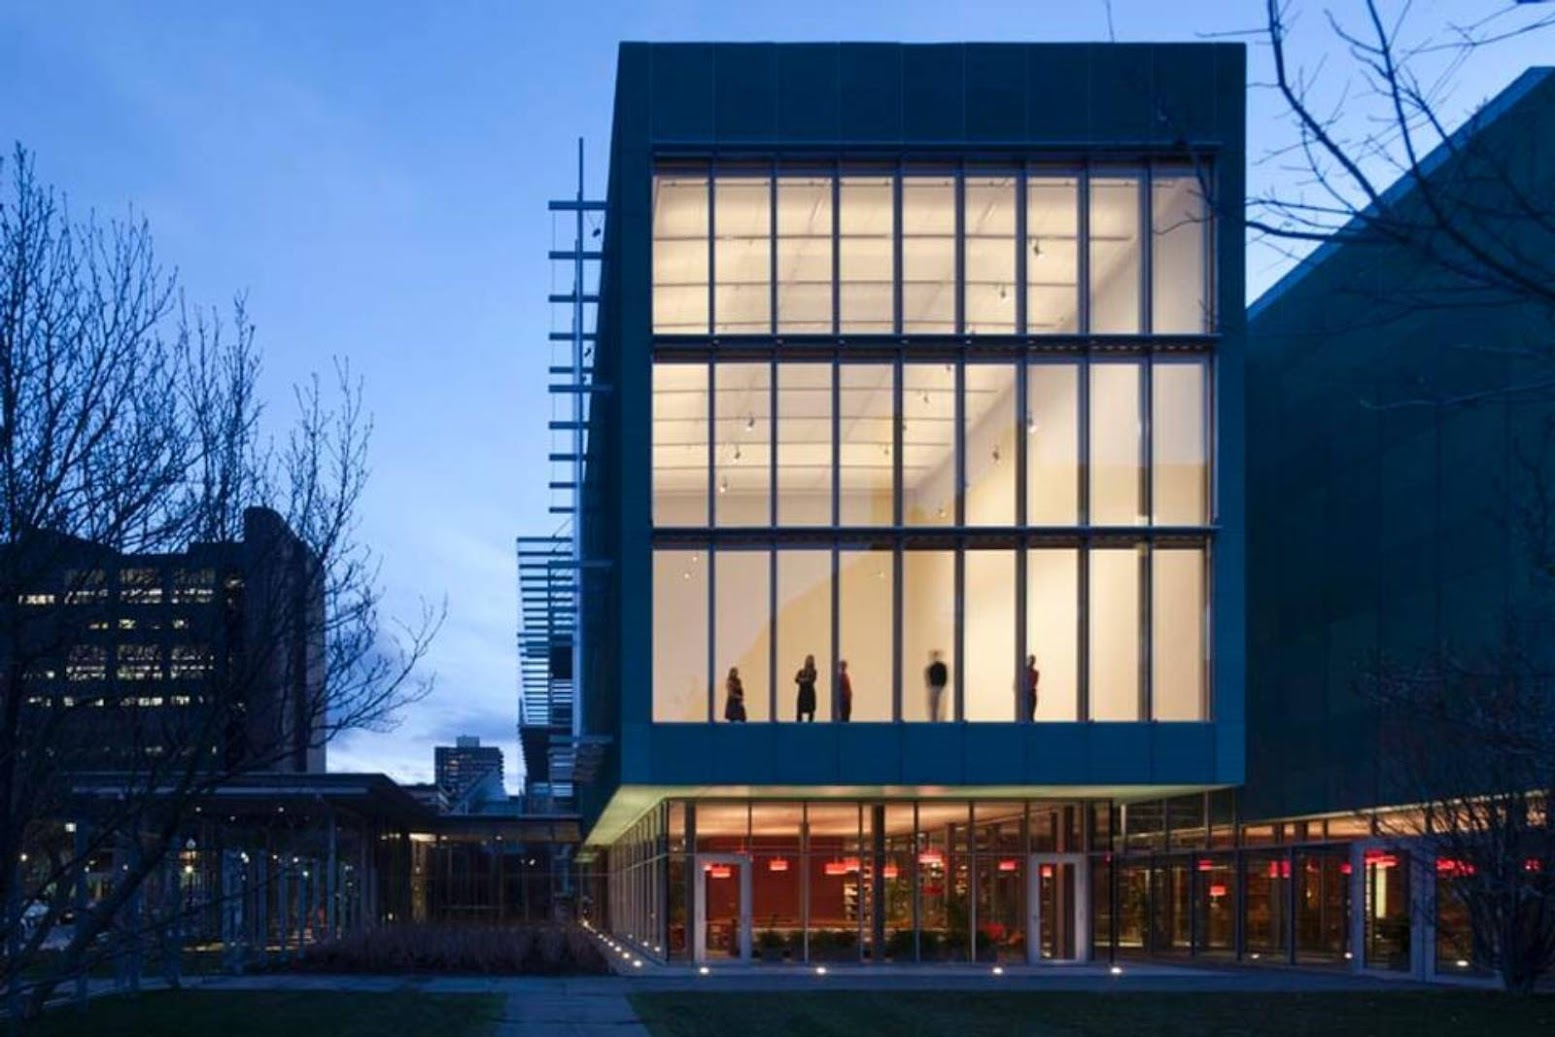 Boston, Massachusetts, Stati Uniti: [ISABELLA STEWART GARDNER MUSEUM BY RENZO PIANO]